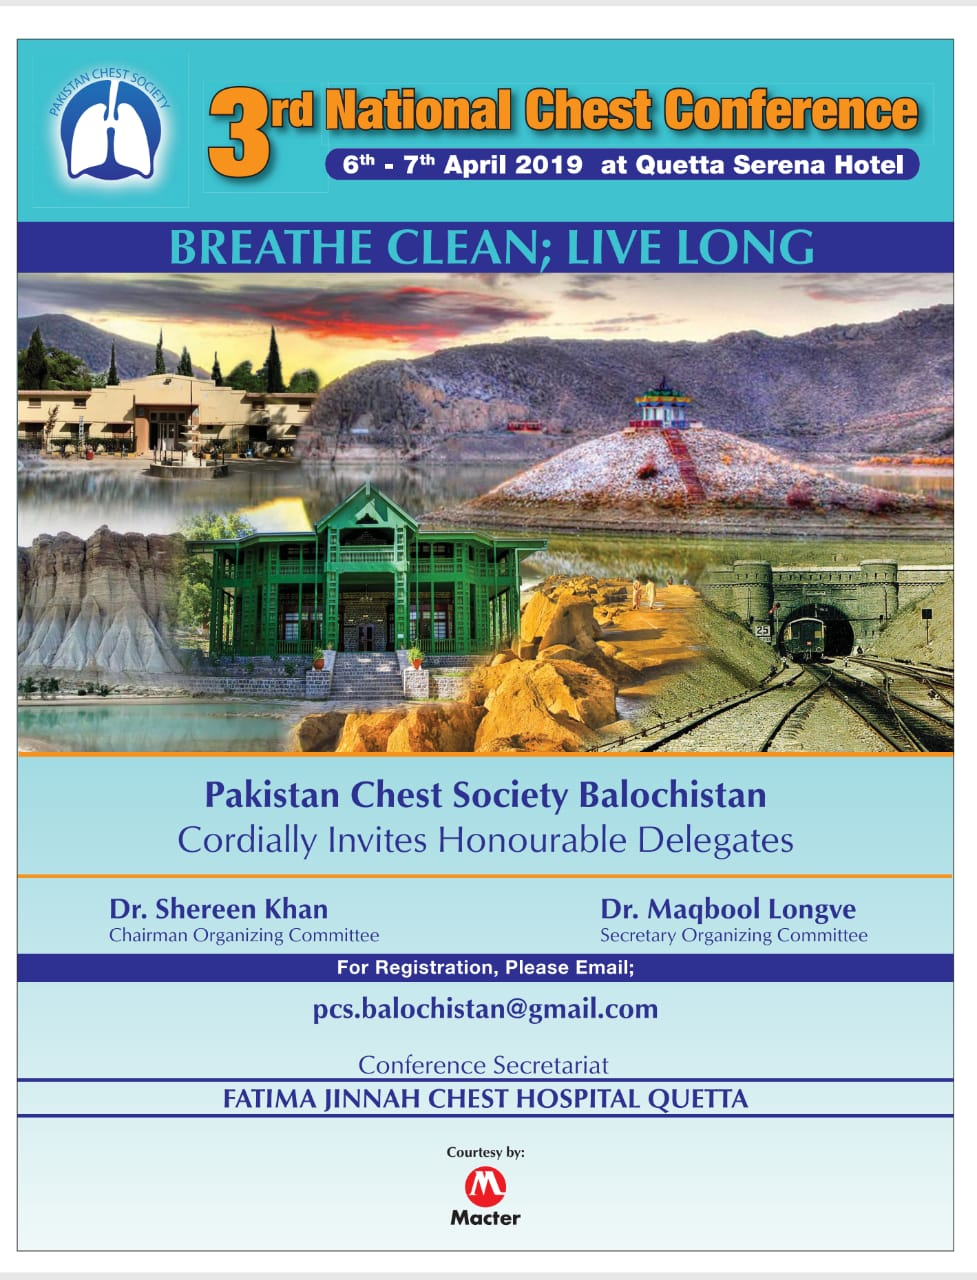 3rd National Chest Conference 6th – 7th April 2019 at Quetta Serena Hotel